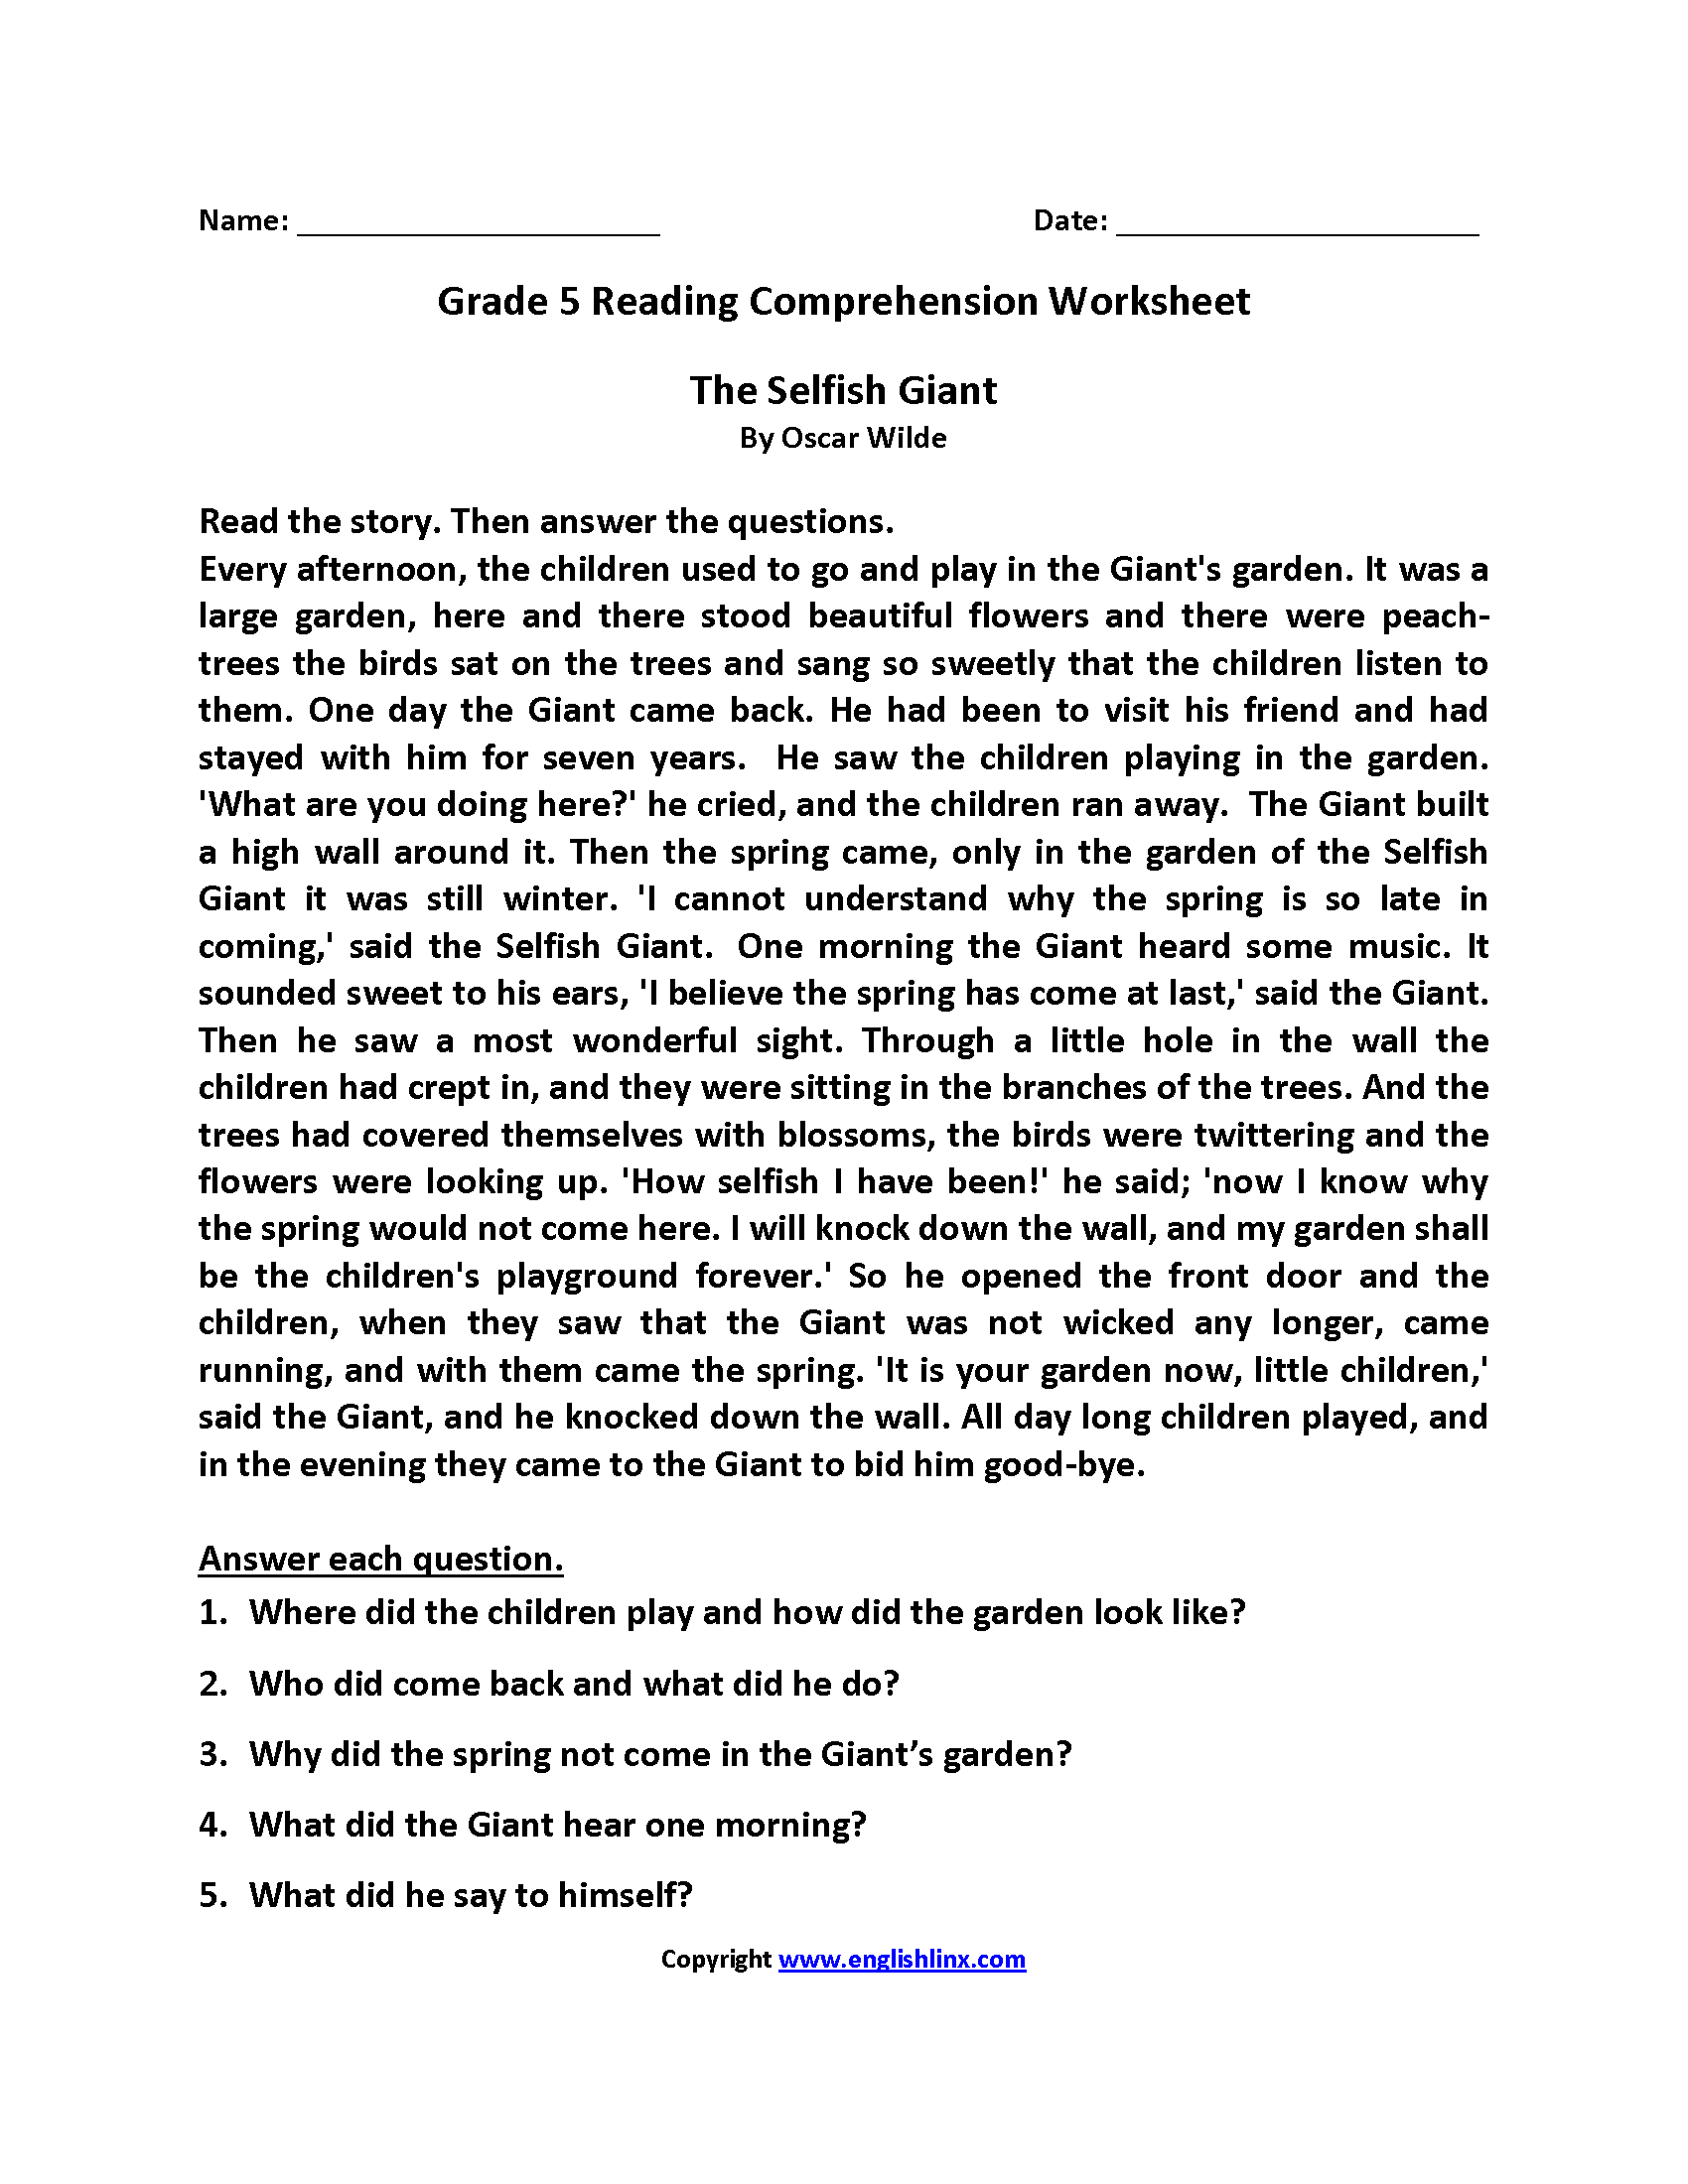 Selfish Giant Fifth Grade Reading Worksheets English Class